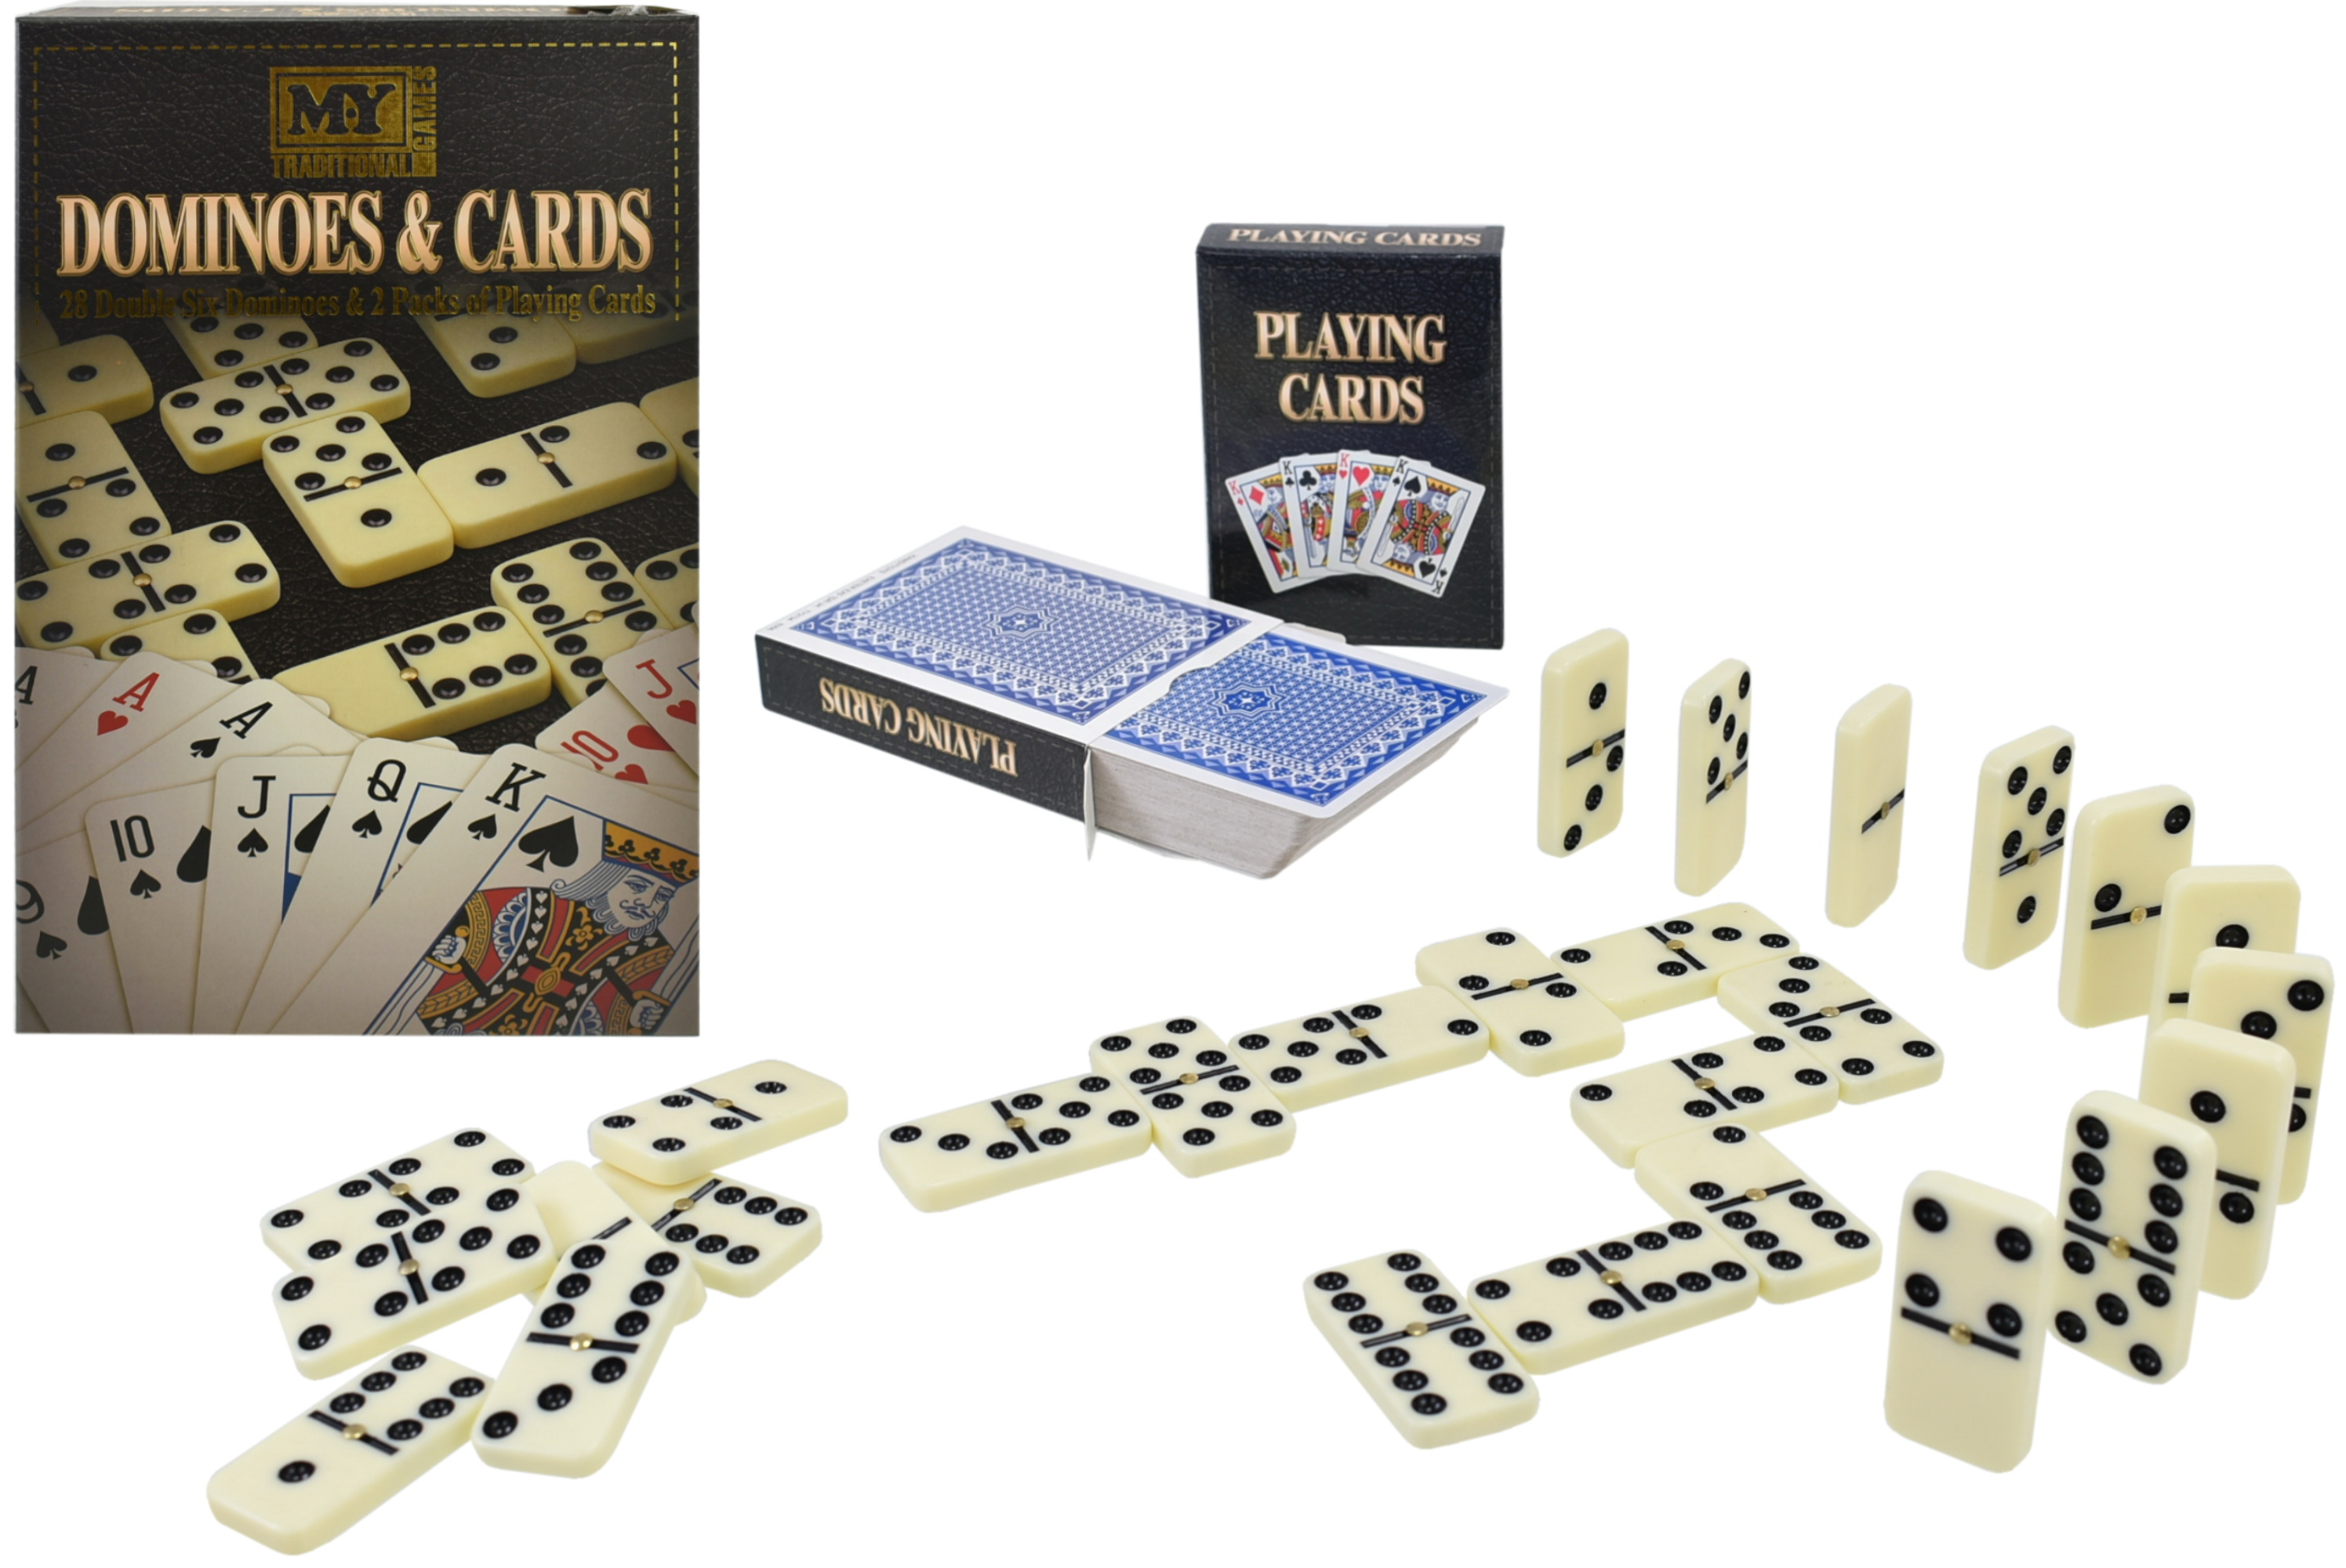 """28pc Double Six Dominoes & 2 Pack Playing Cards """"M.Y"""""""